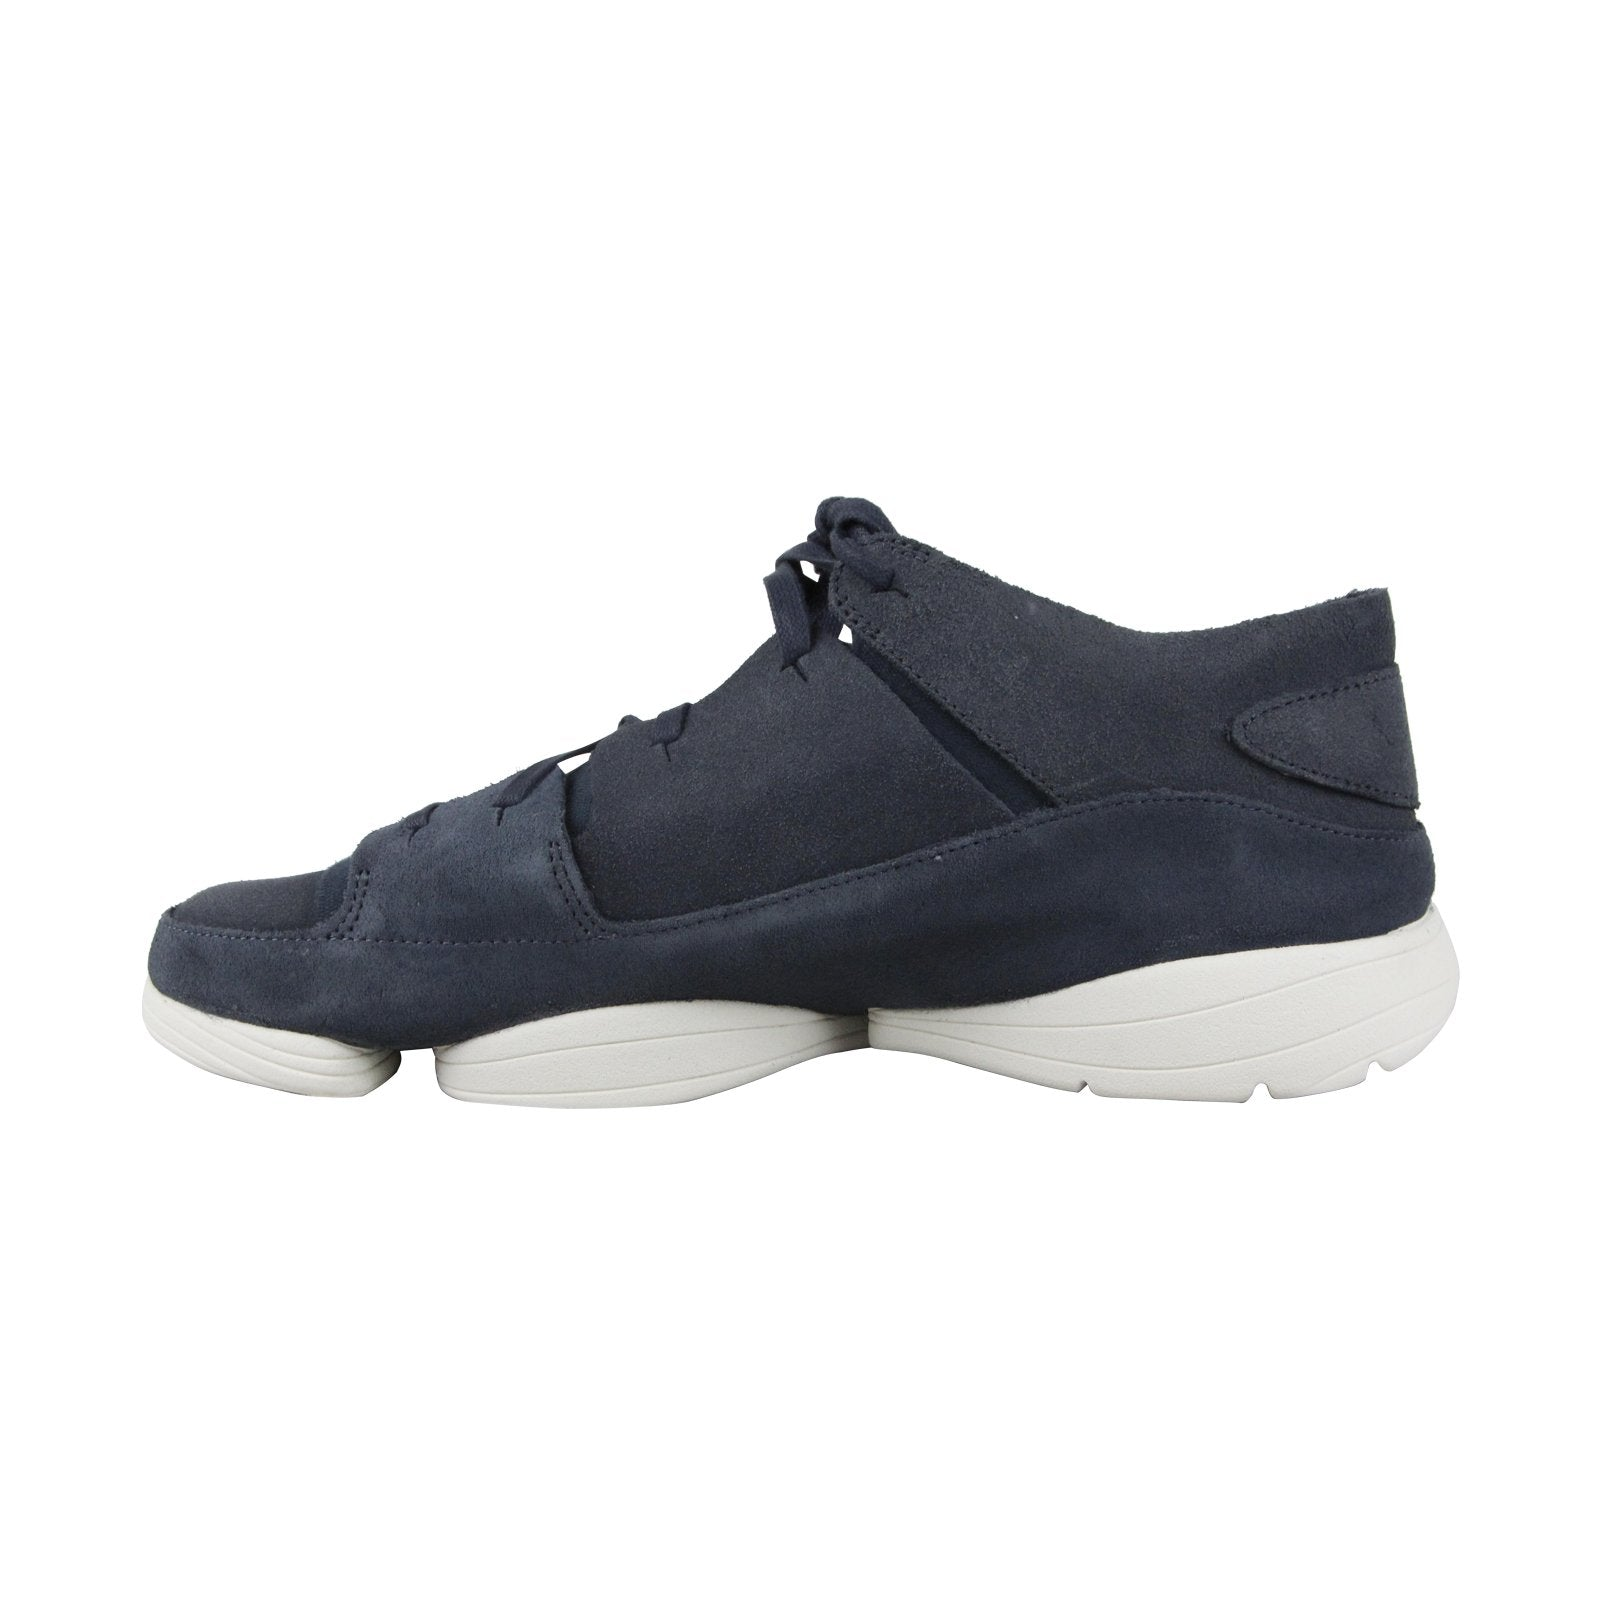 Clarks Trigenic Evo 26135717 Mens Blue Comfort Casual Fashion Sneakers Shoes